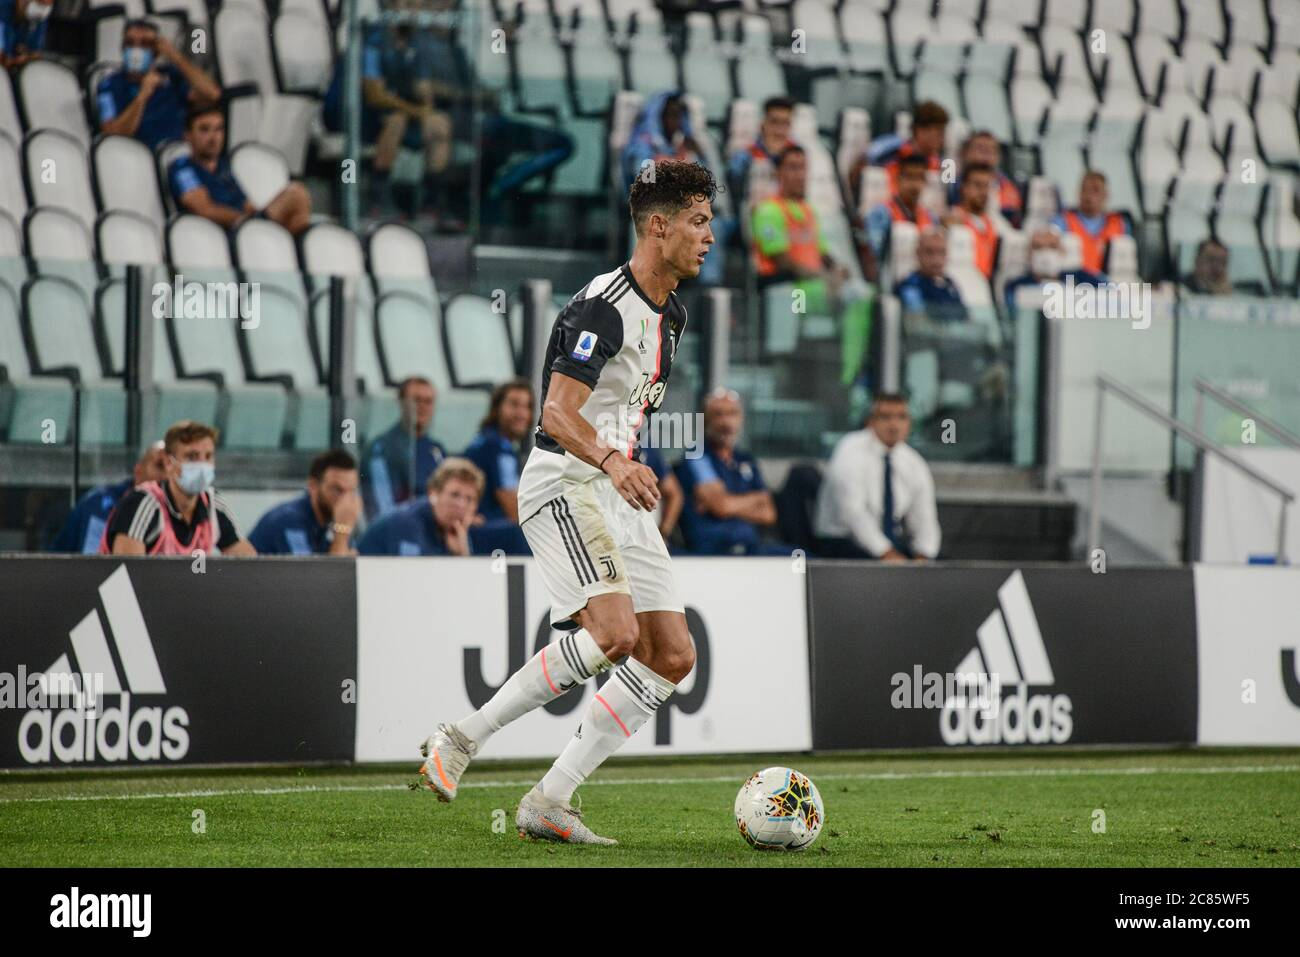 Turin Italy 20th July 2020 Cristiano Ronaldo Of Juventus In Action During The Serie A Football